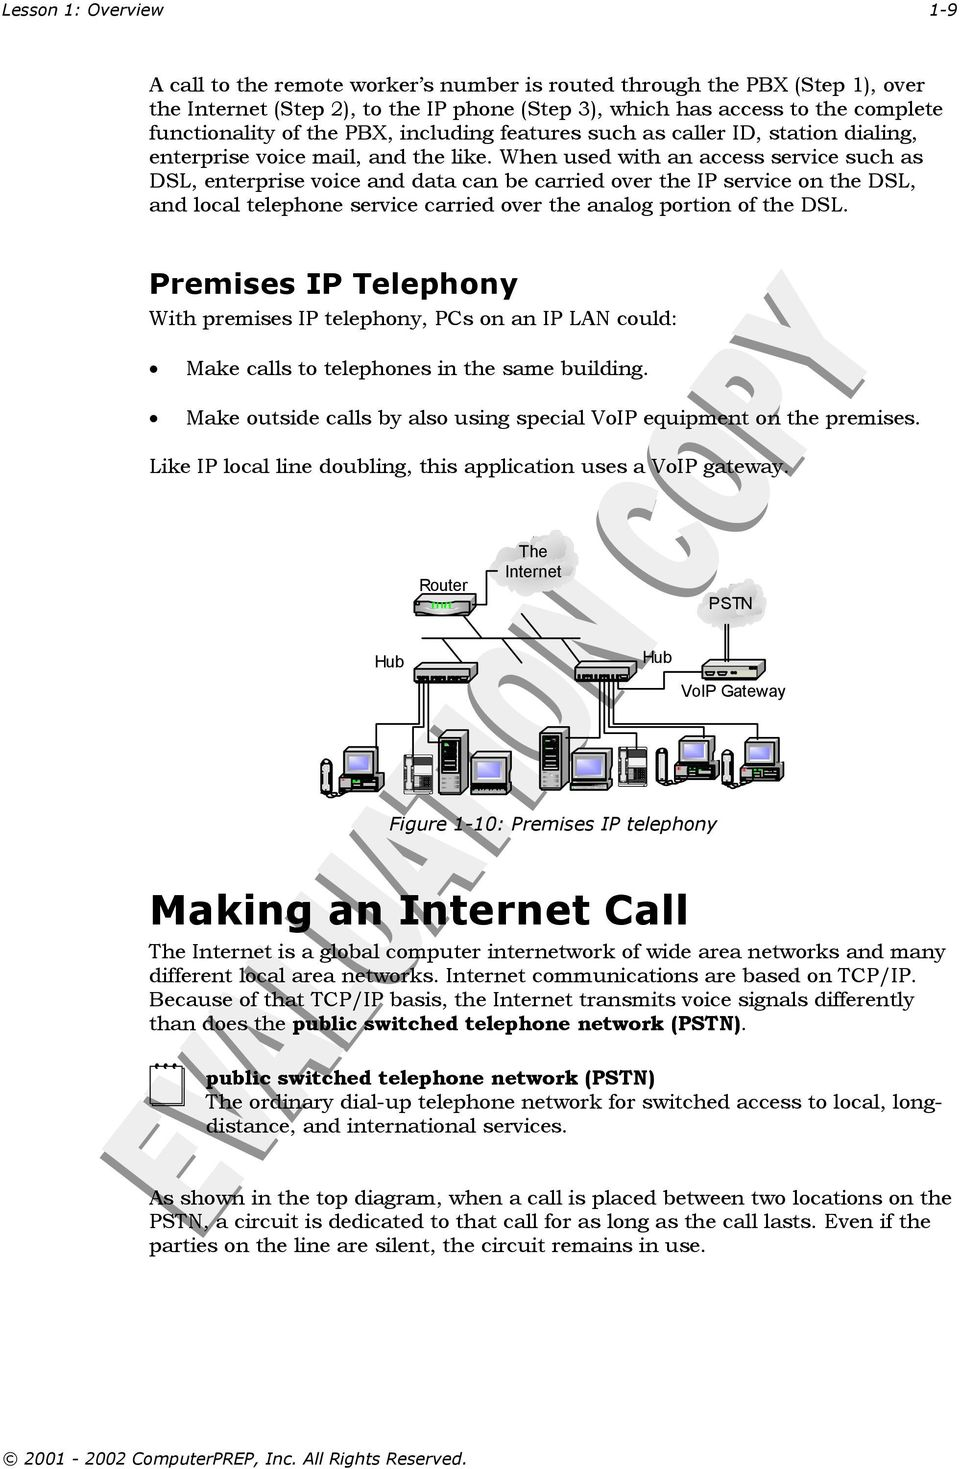 When used with an access service such as DSL, enterprise voice and data can be carried over the IP service on the DSL, and local telephone service carried over the analog portion of the DSL.